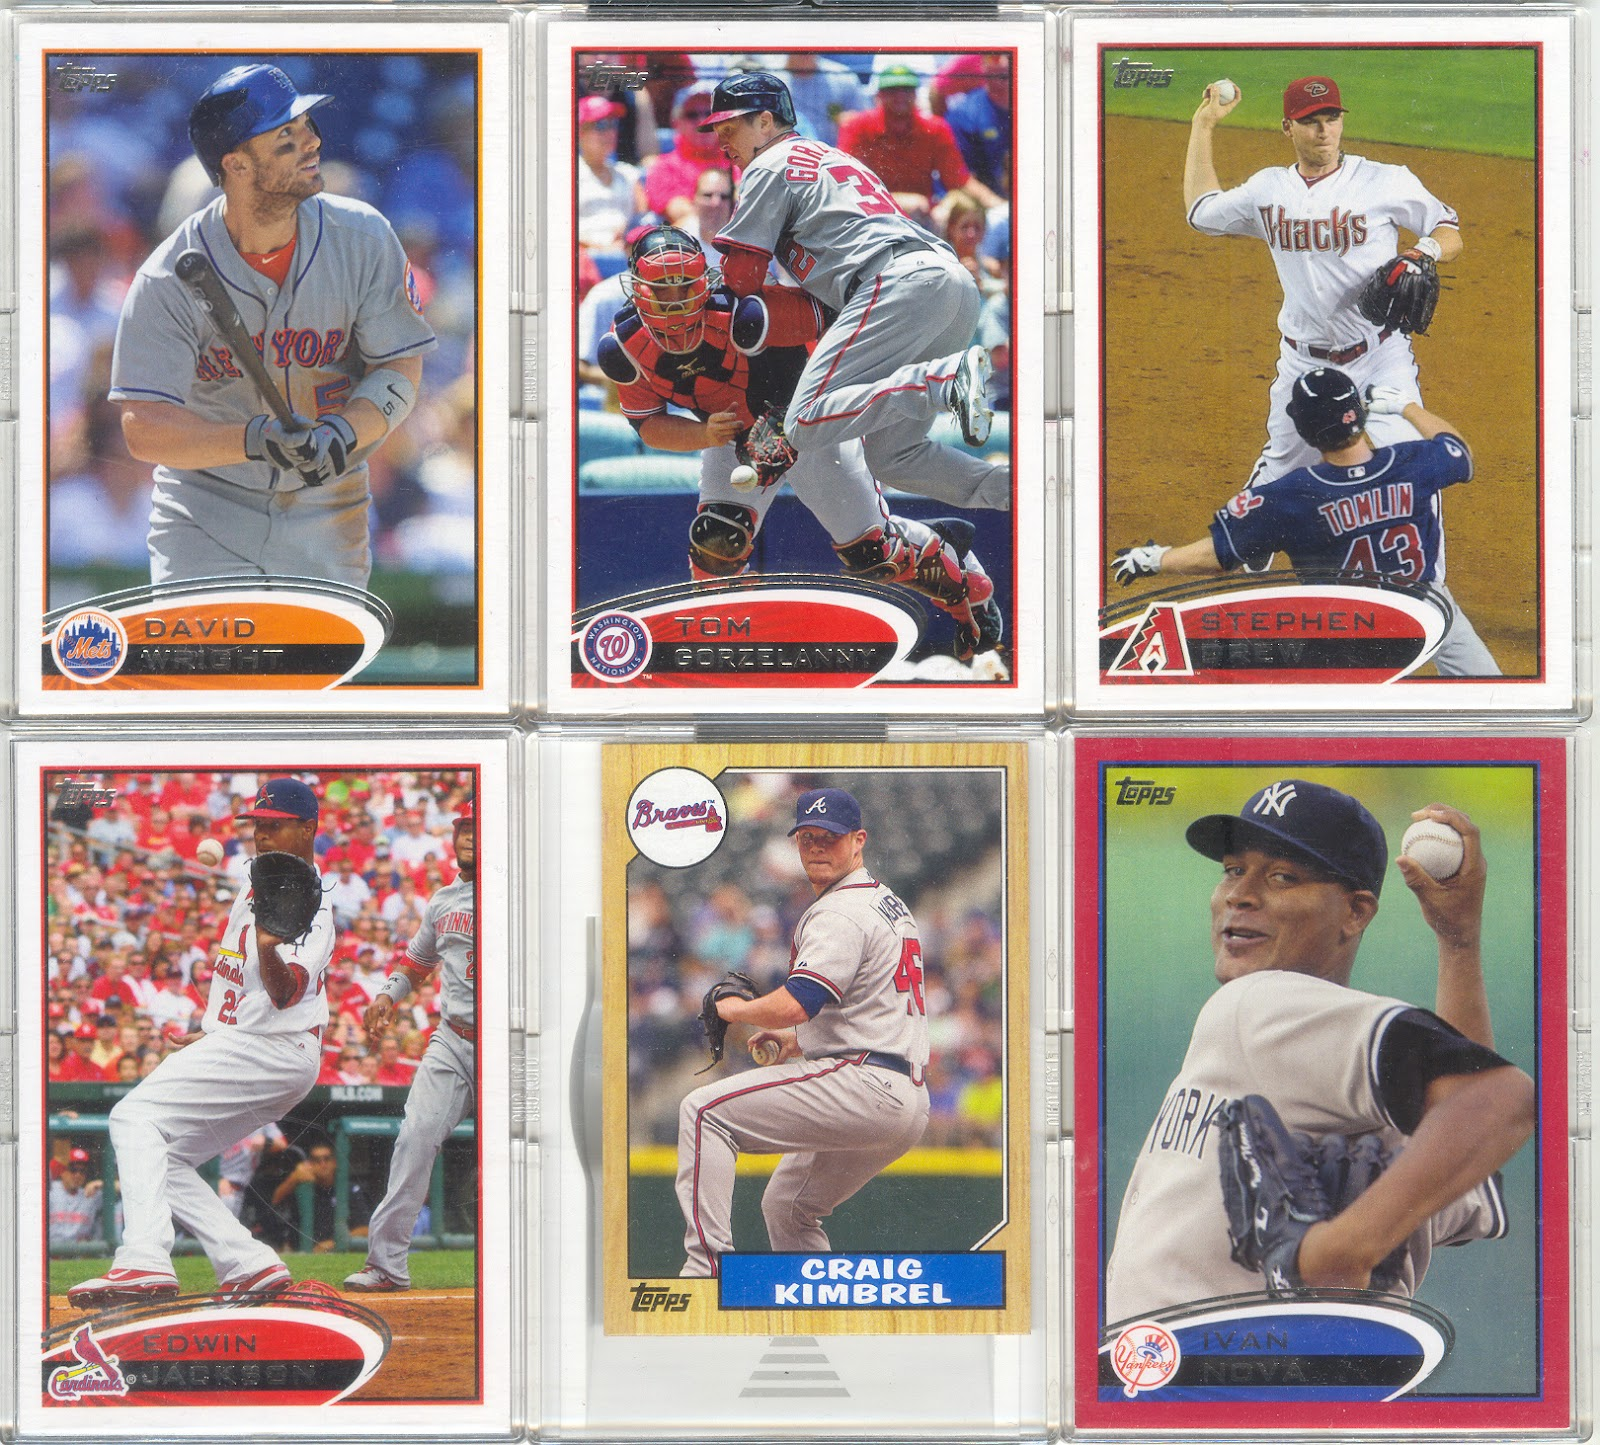 Bdj610s Topps Baseball Card Blog Pack Break Week 3 2012